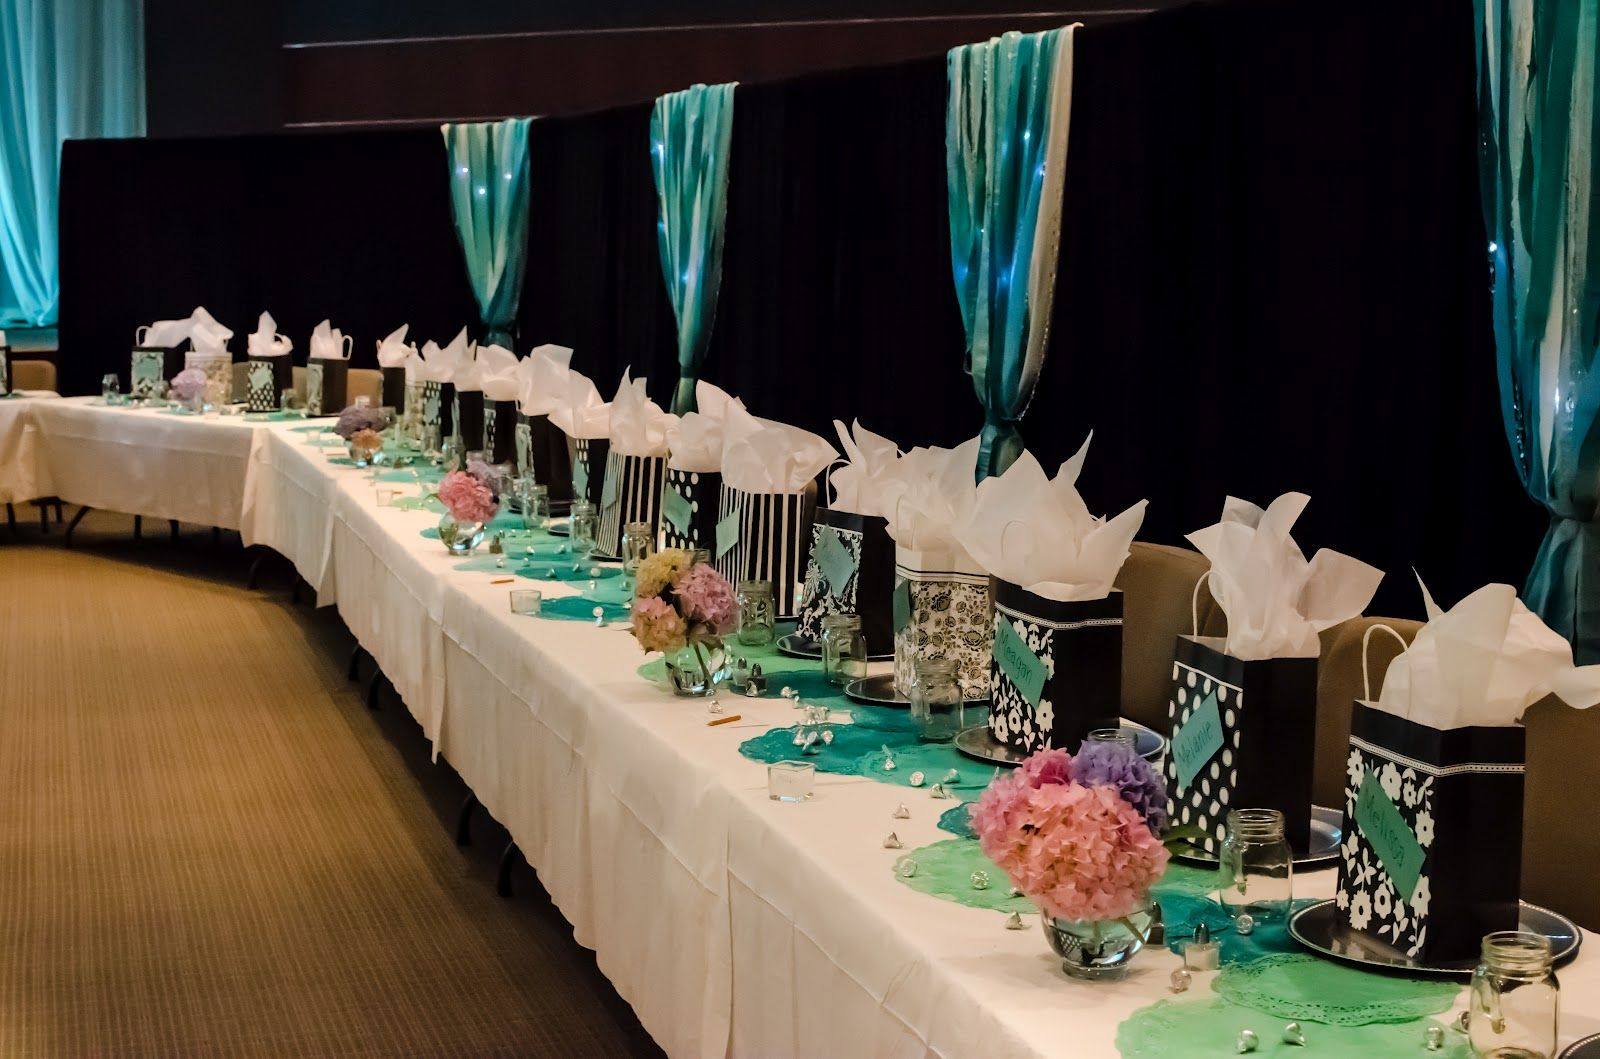 About Decorating For A Formal Banquet For Your Pastor Ehow Add